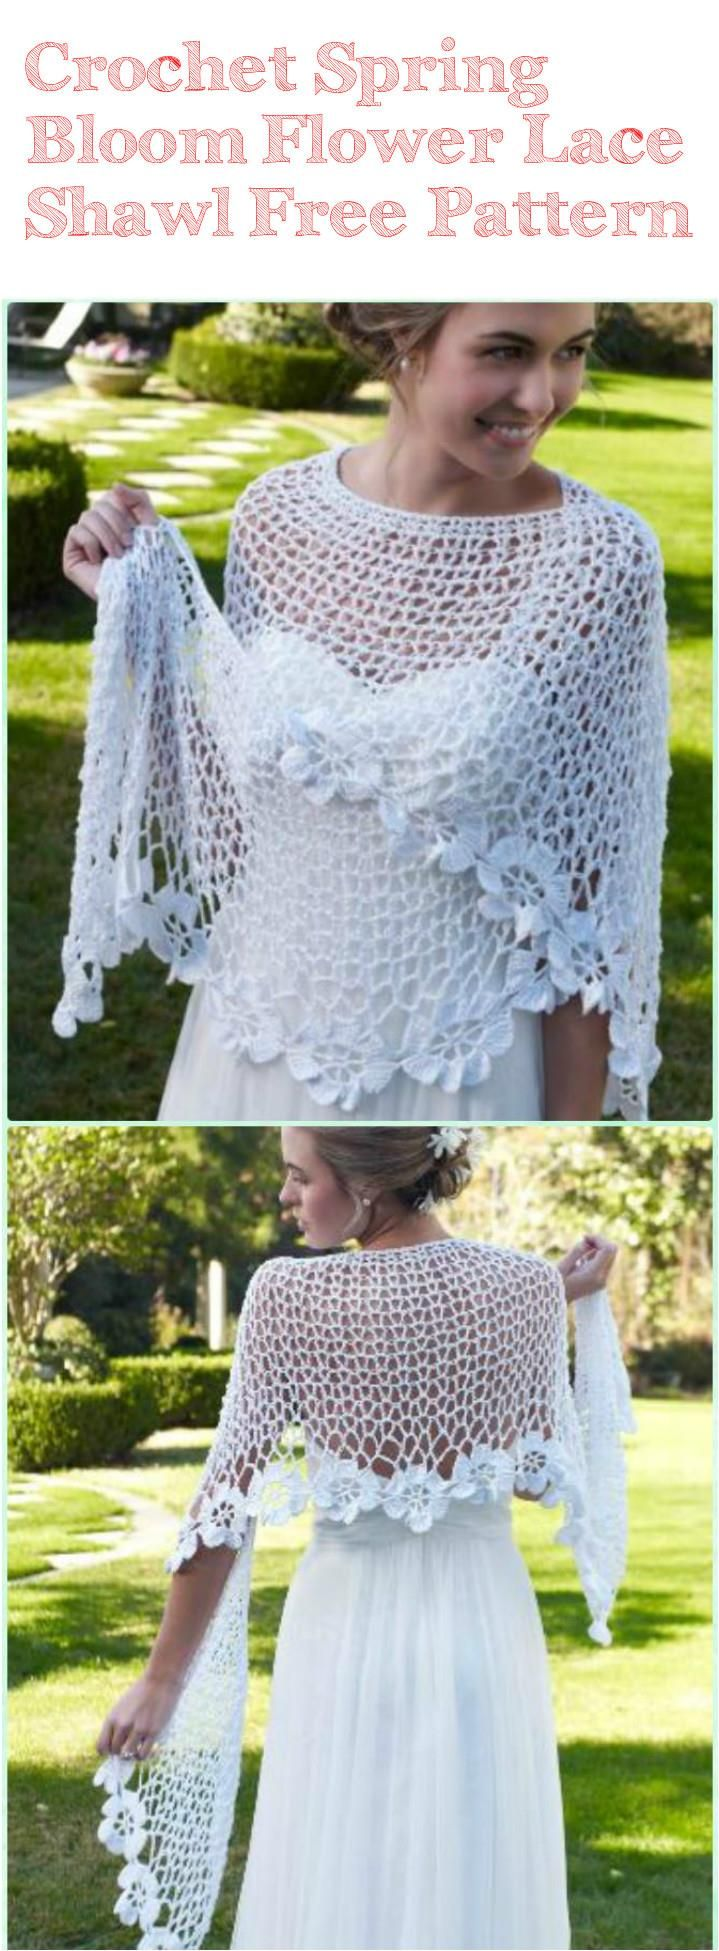 10 FREE Crochet Shawl Patterns for Women\'s | Crocheted Scarves ...